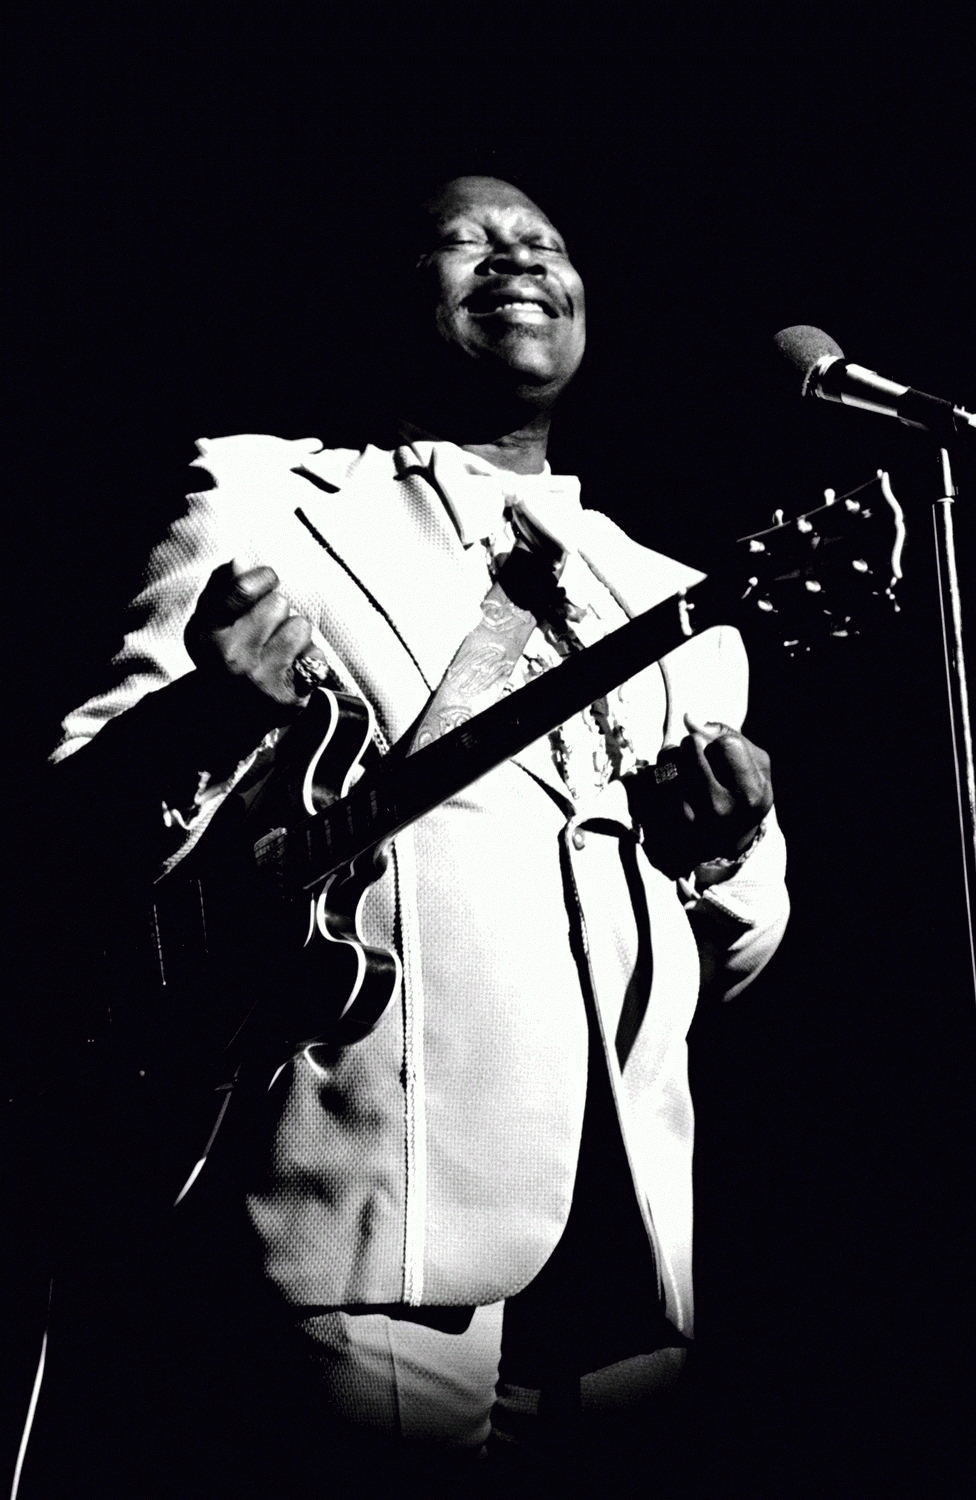 B.B. King with Lucille, West Village, NY, 1976